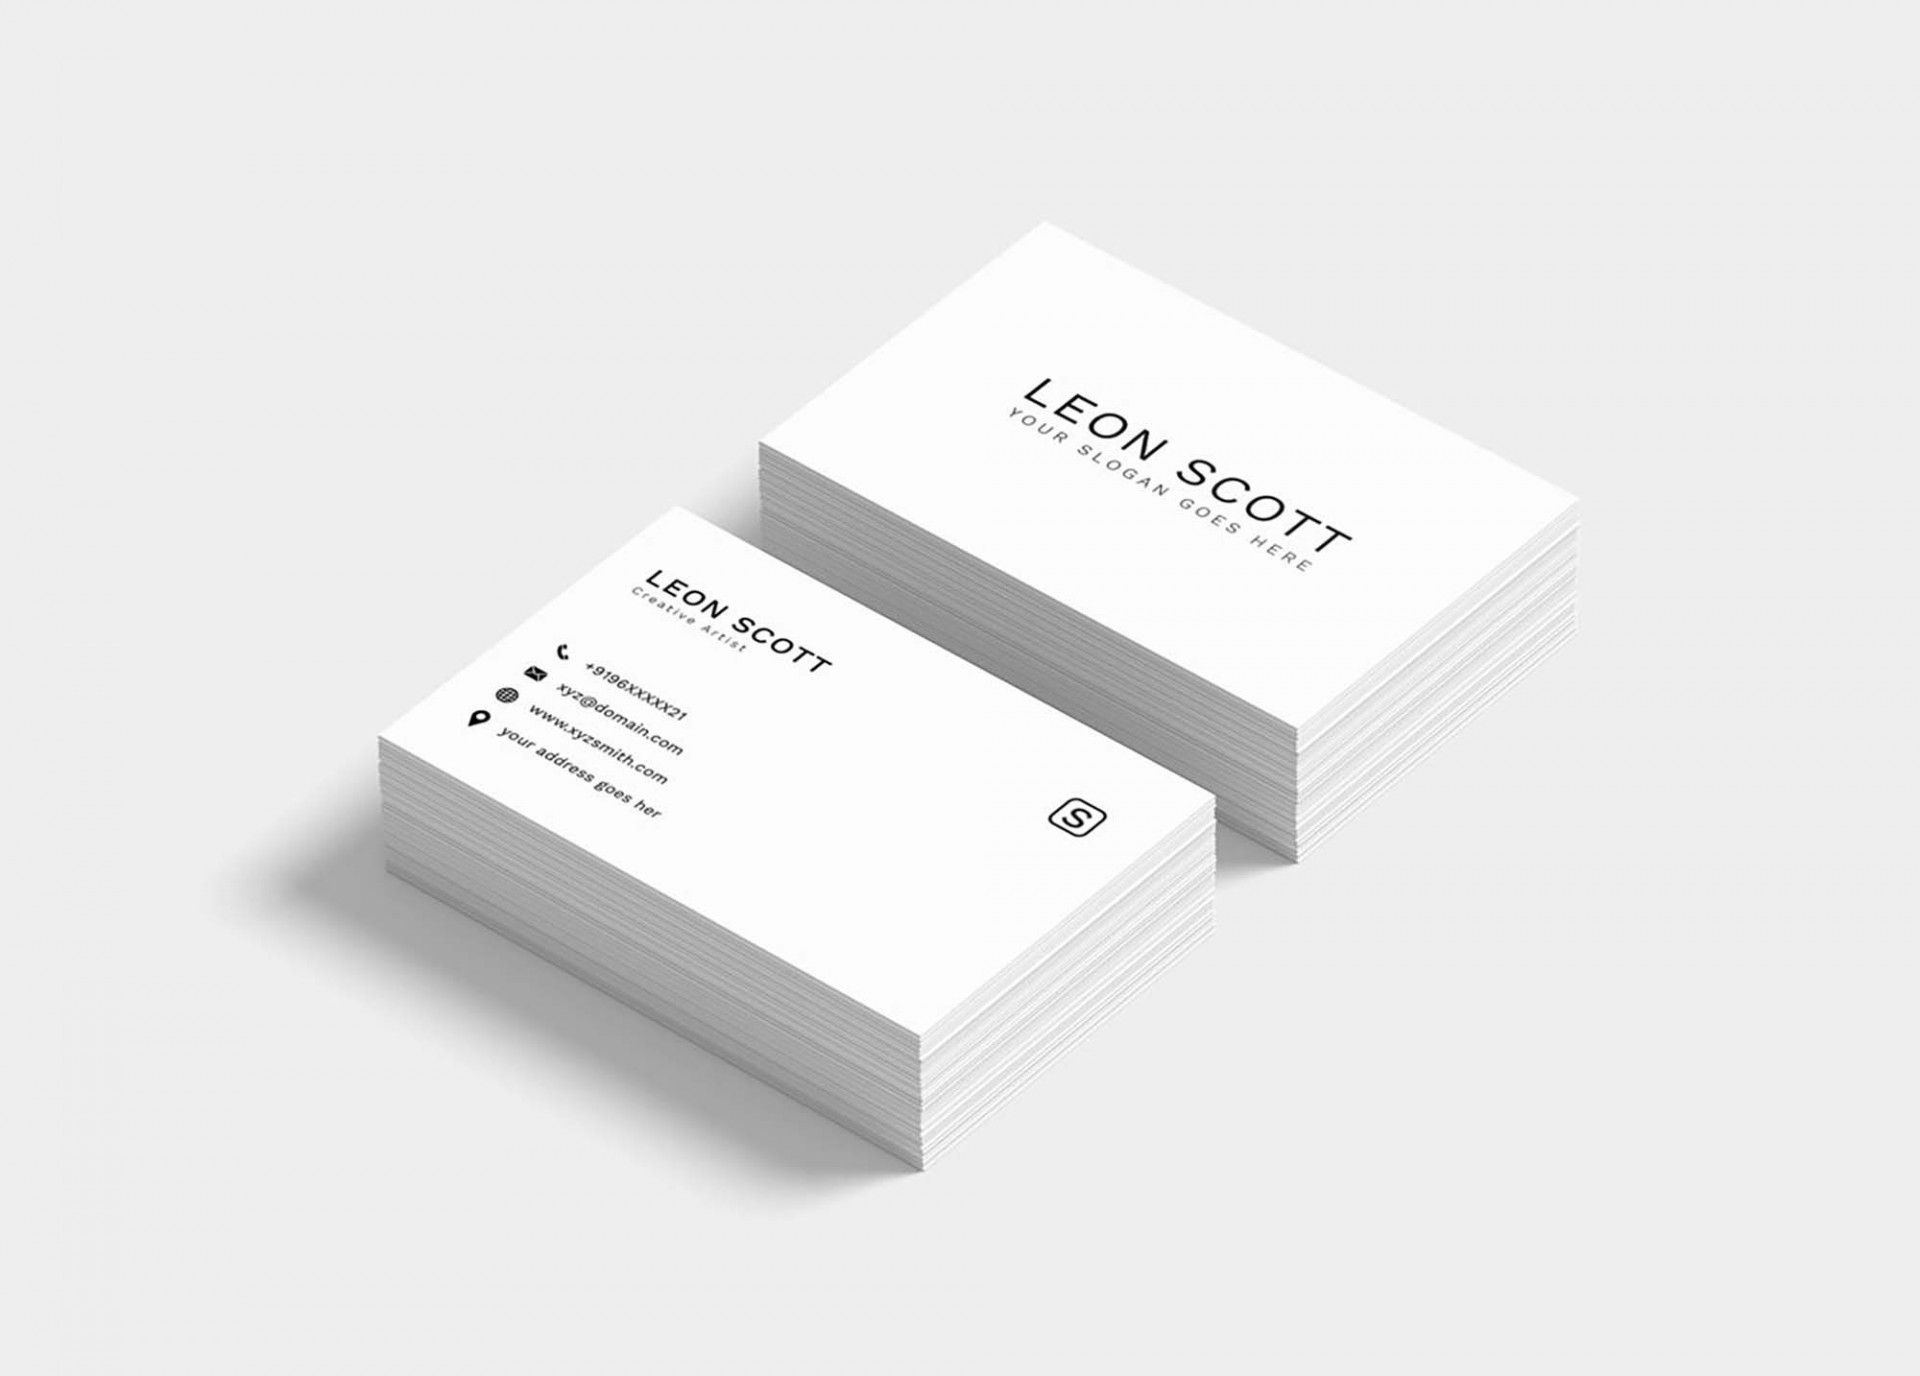 002 Best Simple Busines Card Template Psd Highest Quality  Design In Photoshop Minimalist Free1920